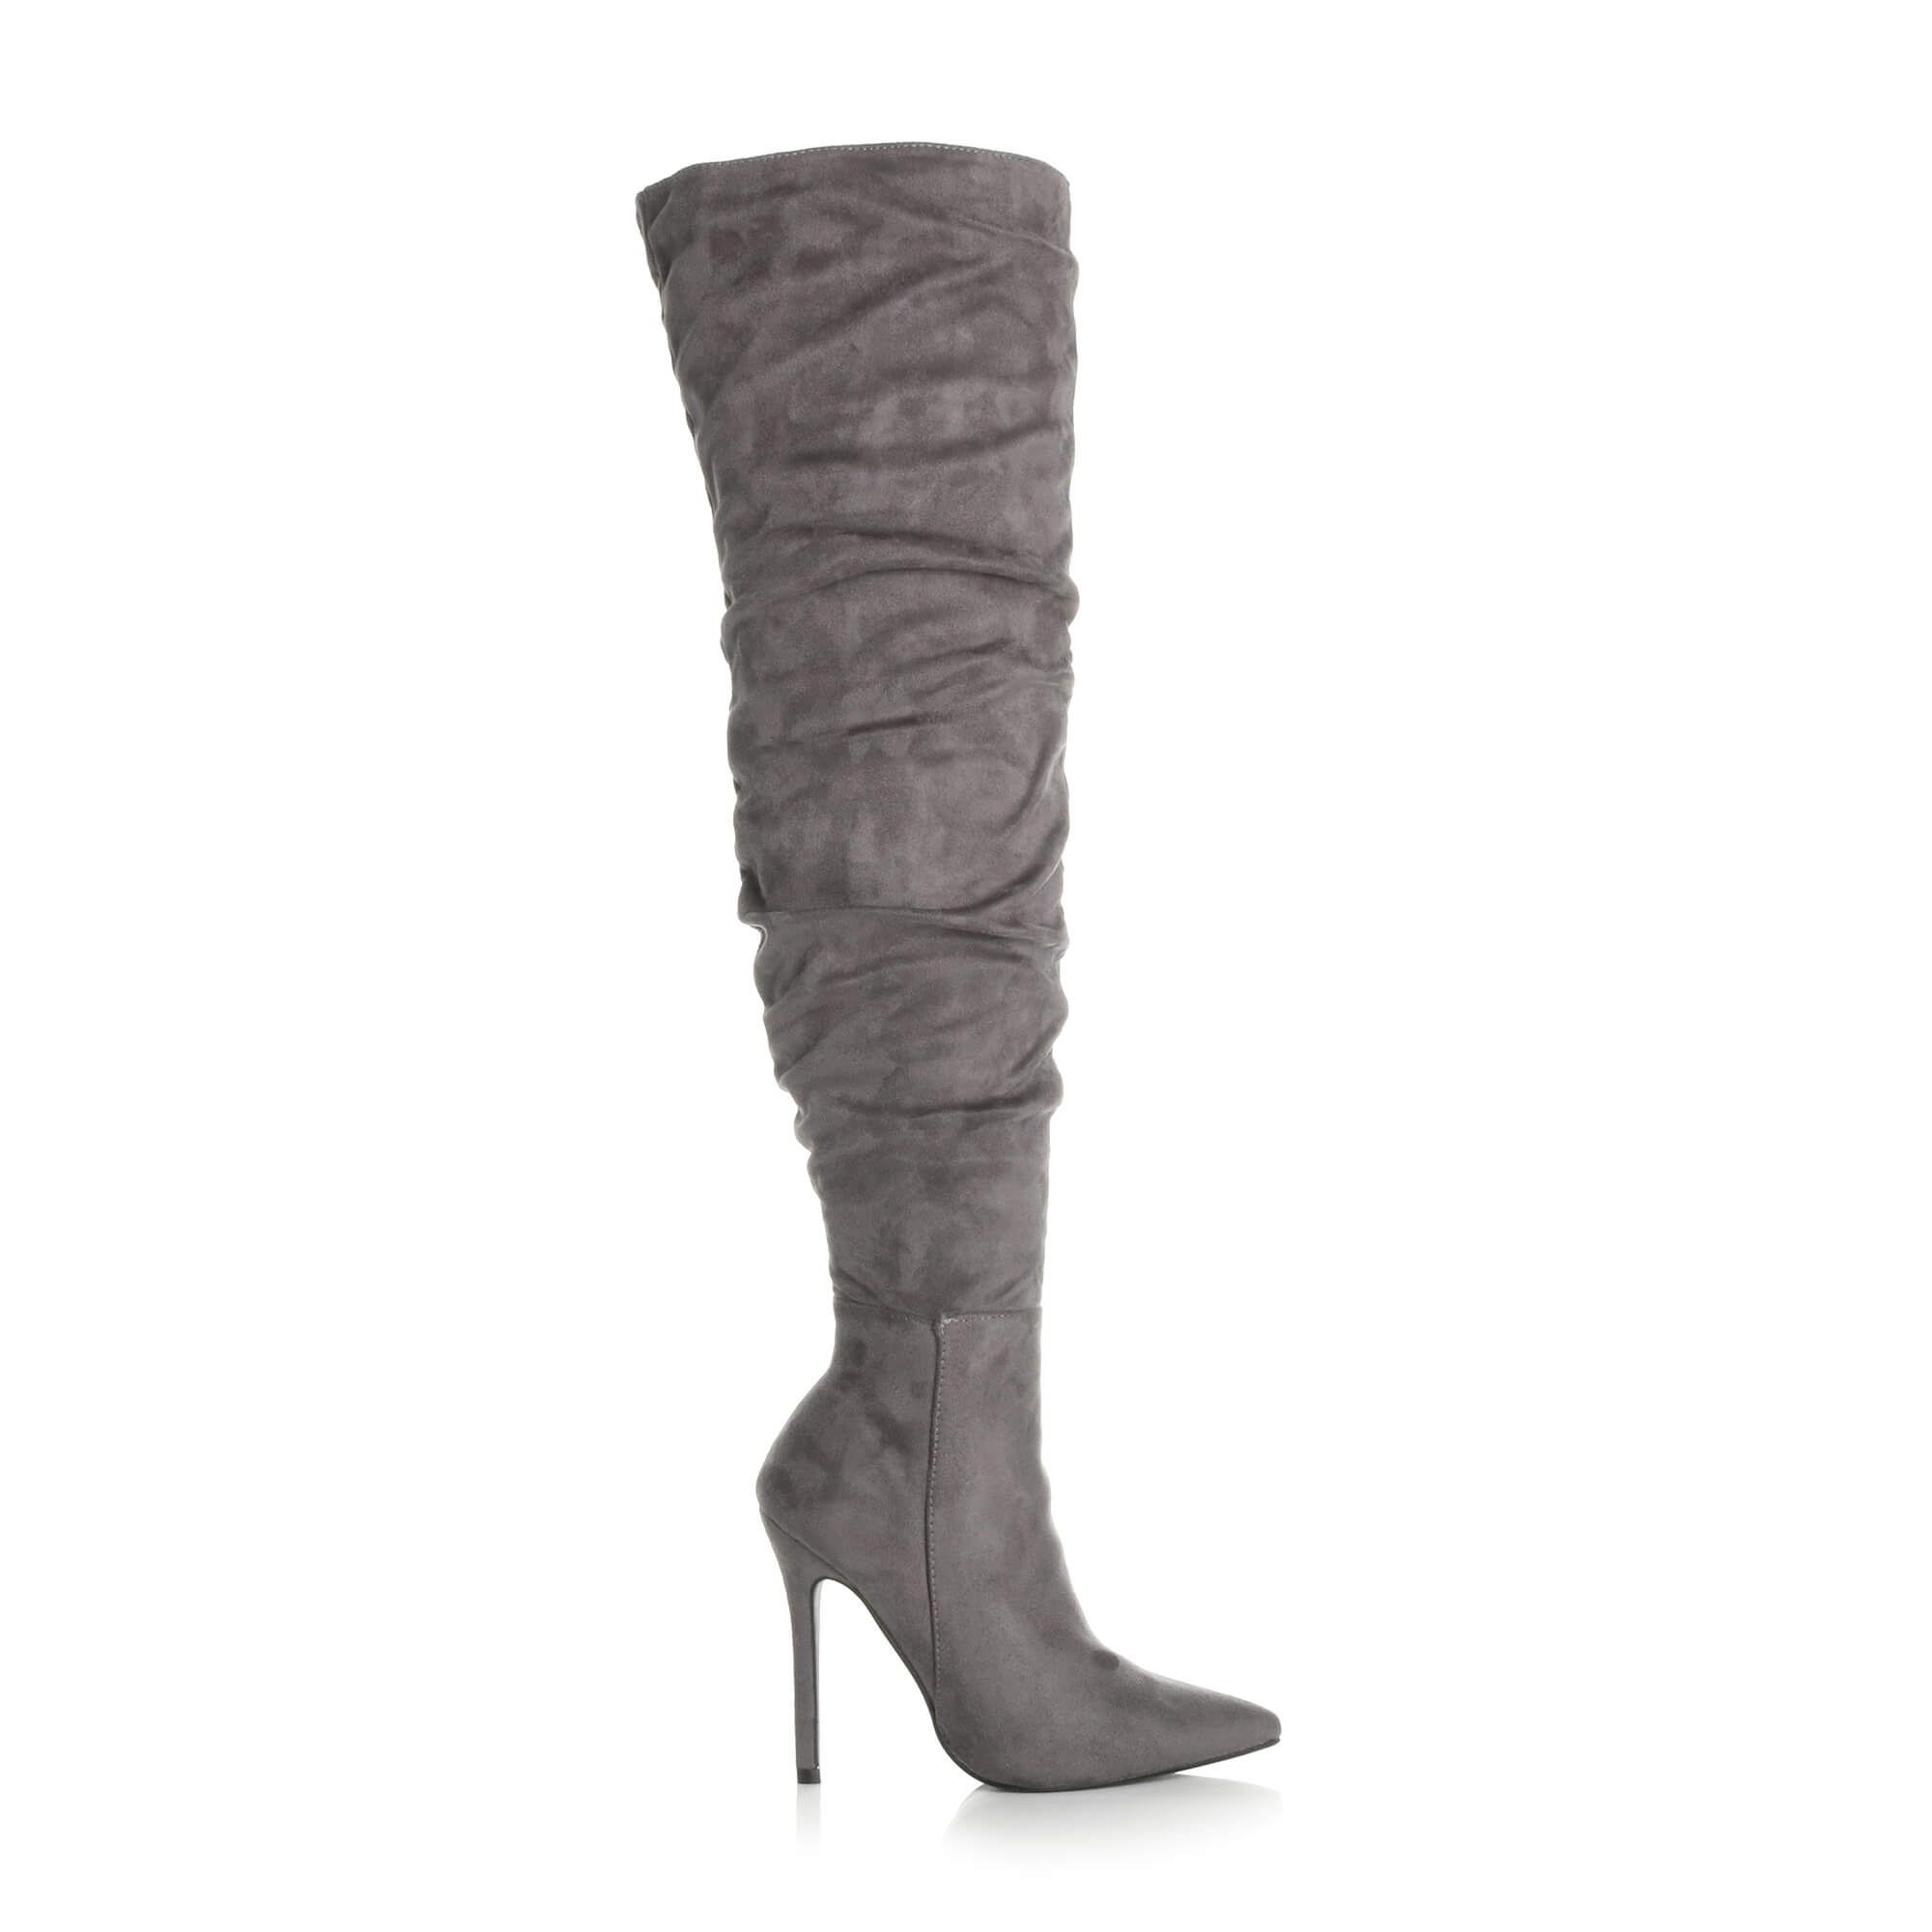 WOMENS-LADIES-SLOUCH-RUCHED-OVER-THE-KNEE-POINTED-THIGH-HIGH-HEELED-BOOTS-SIZE thumbnail 9